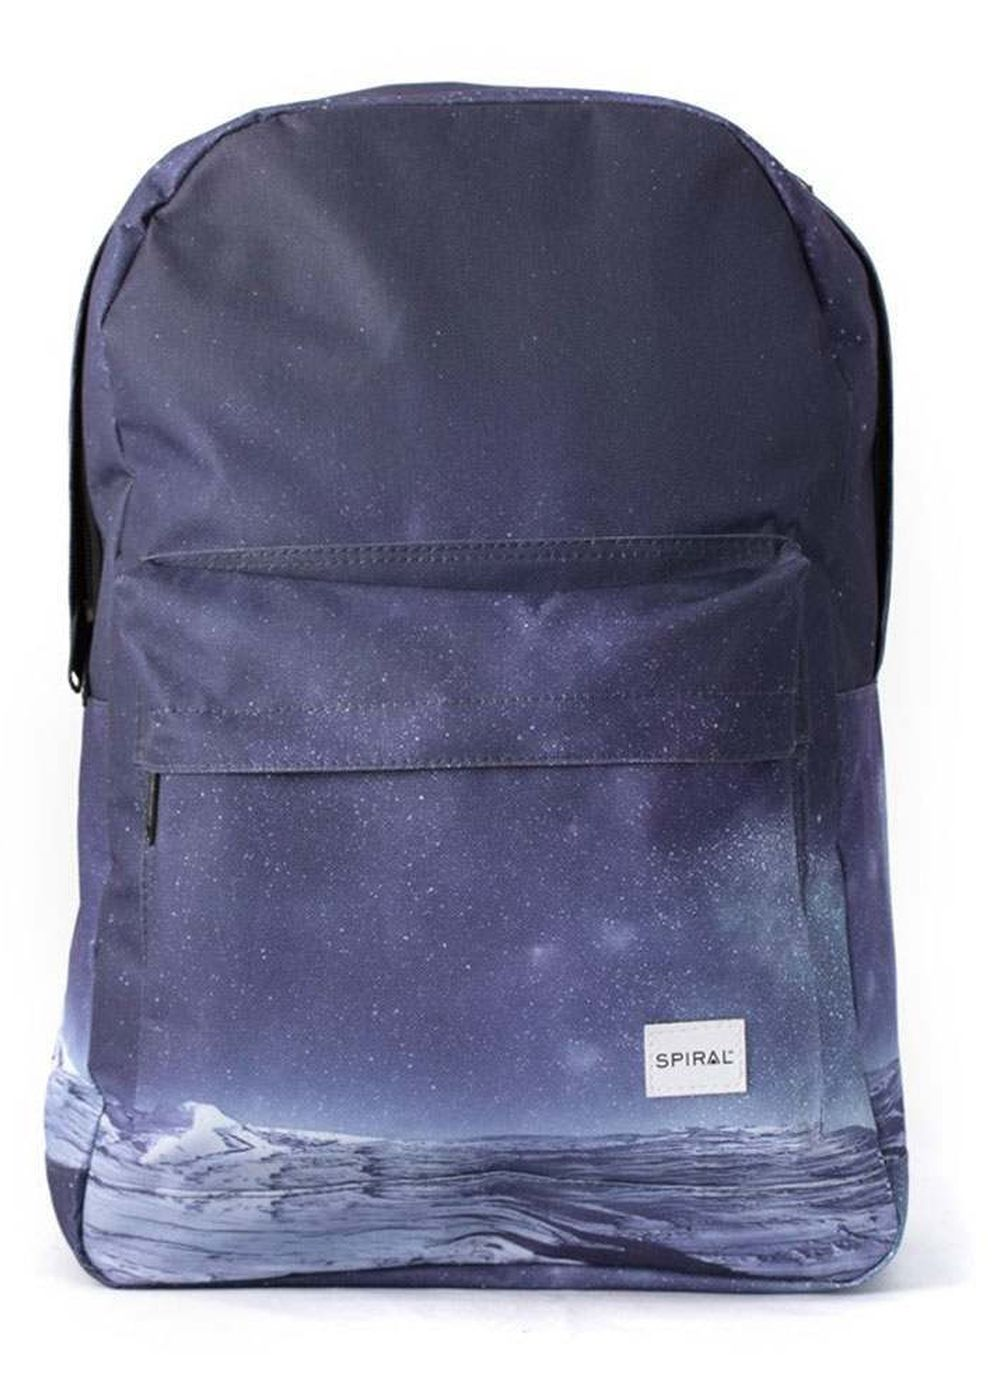 spiral space mountain backpack black/grey